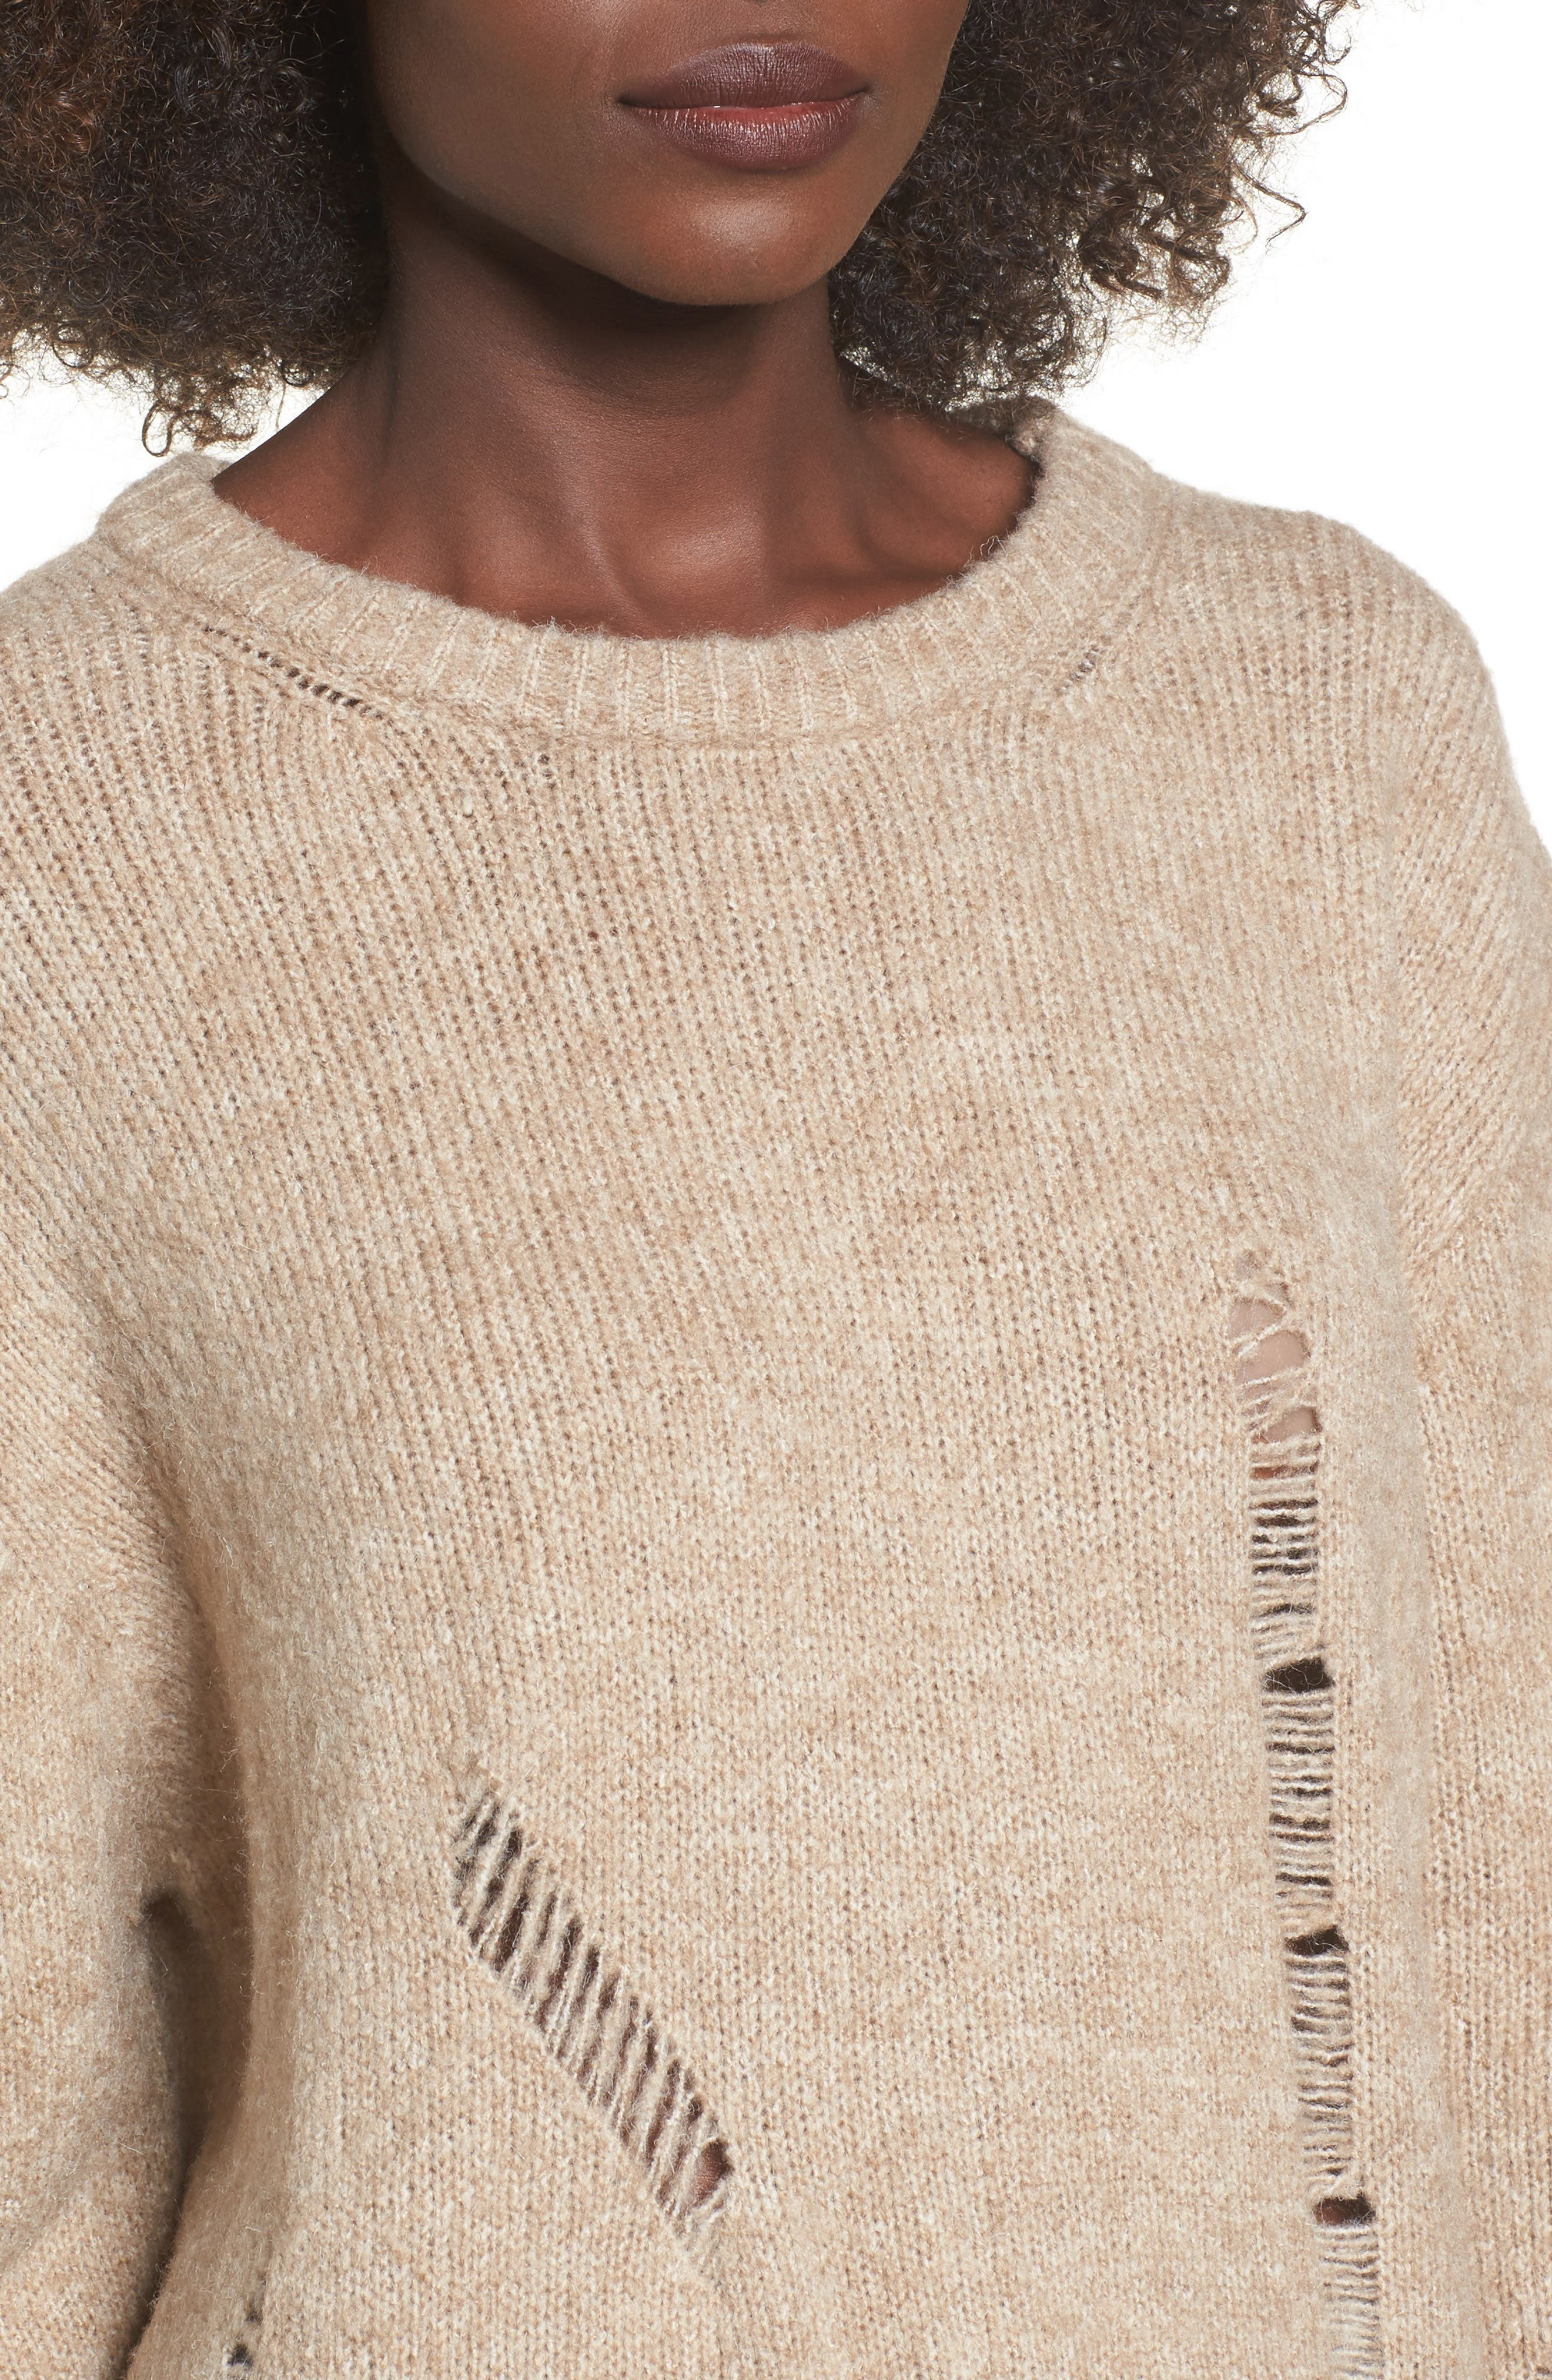 Destroyed Tunic Sweater,                             Alternate thumbnail 4, color,